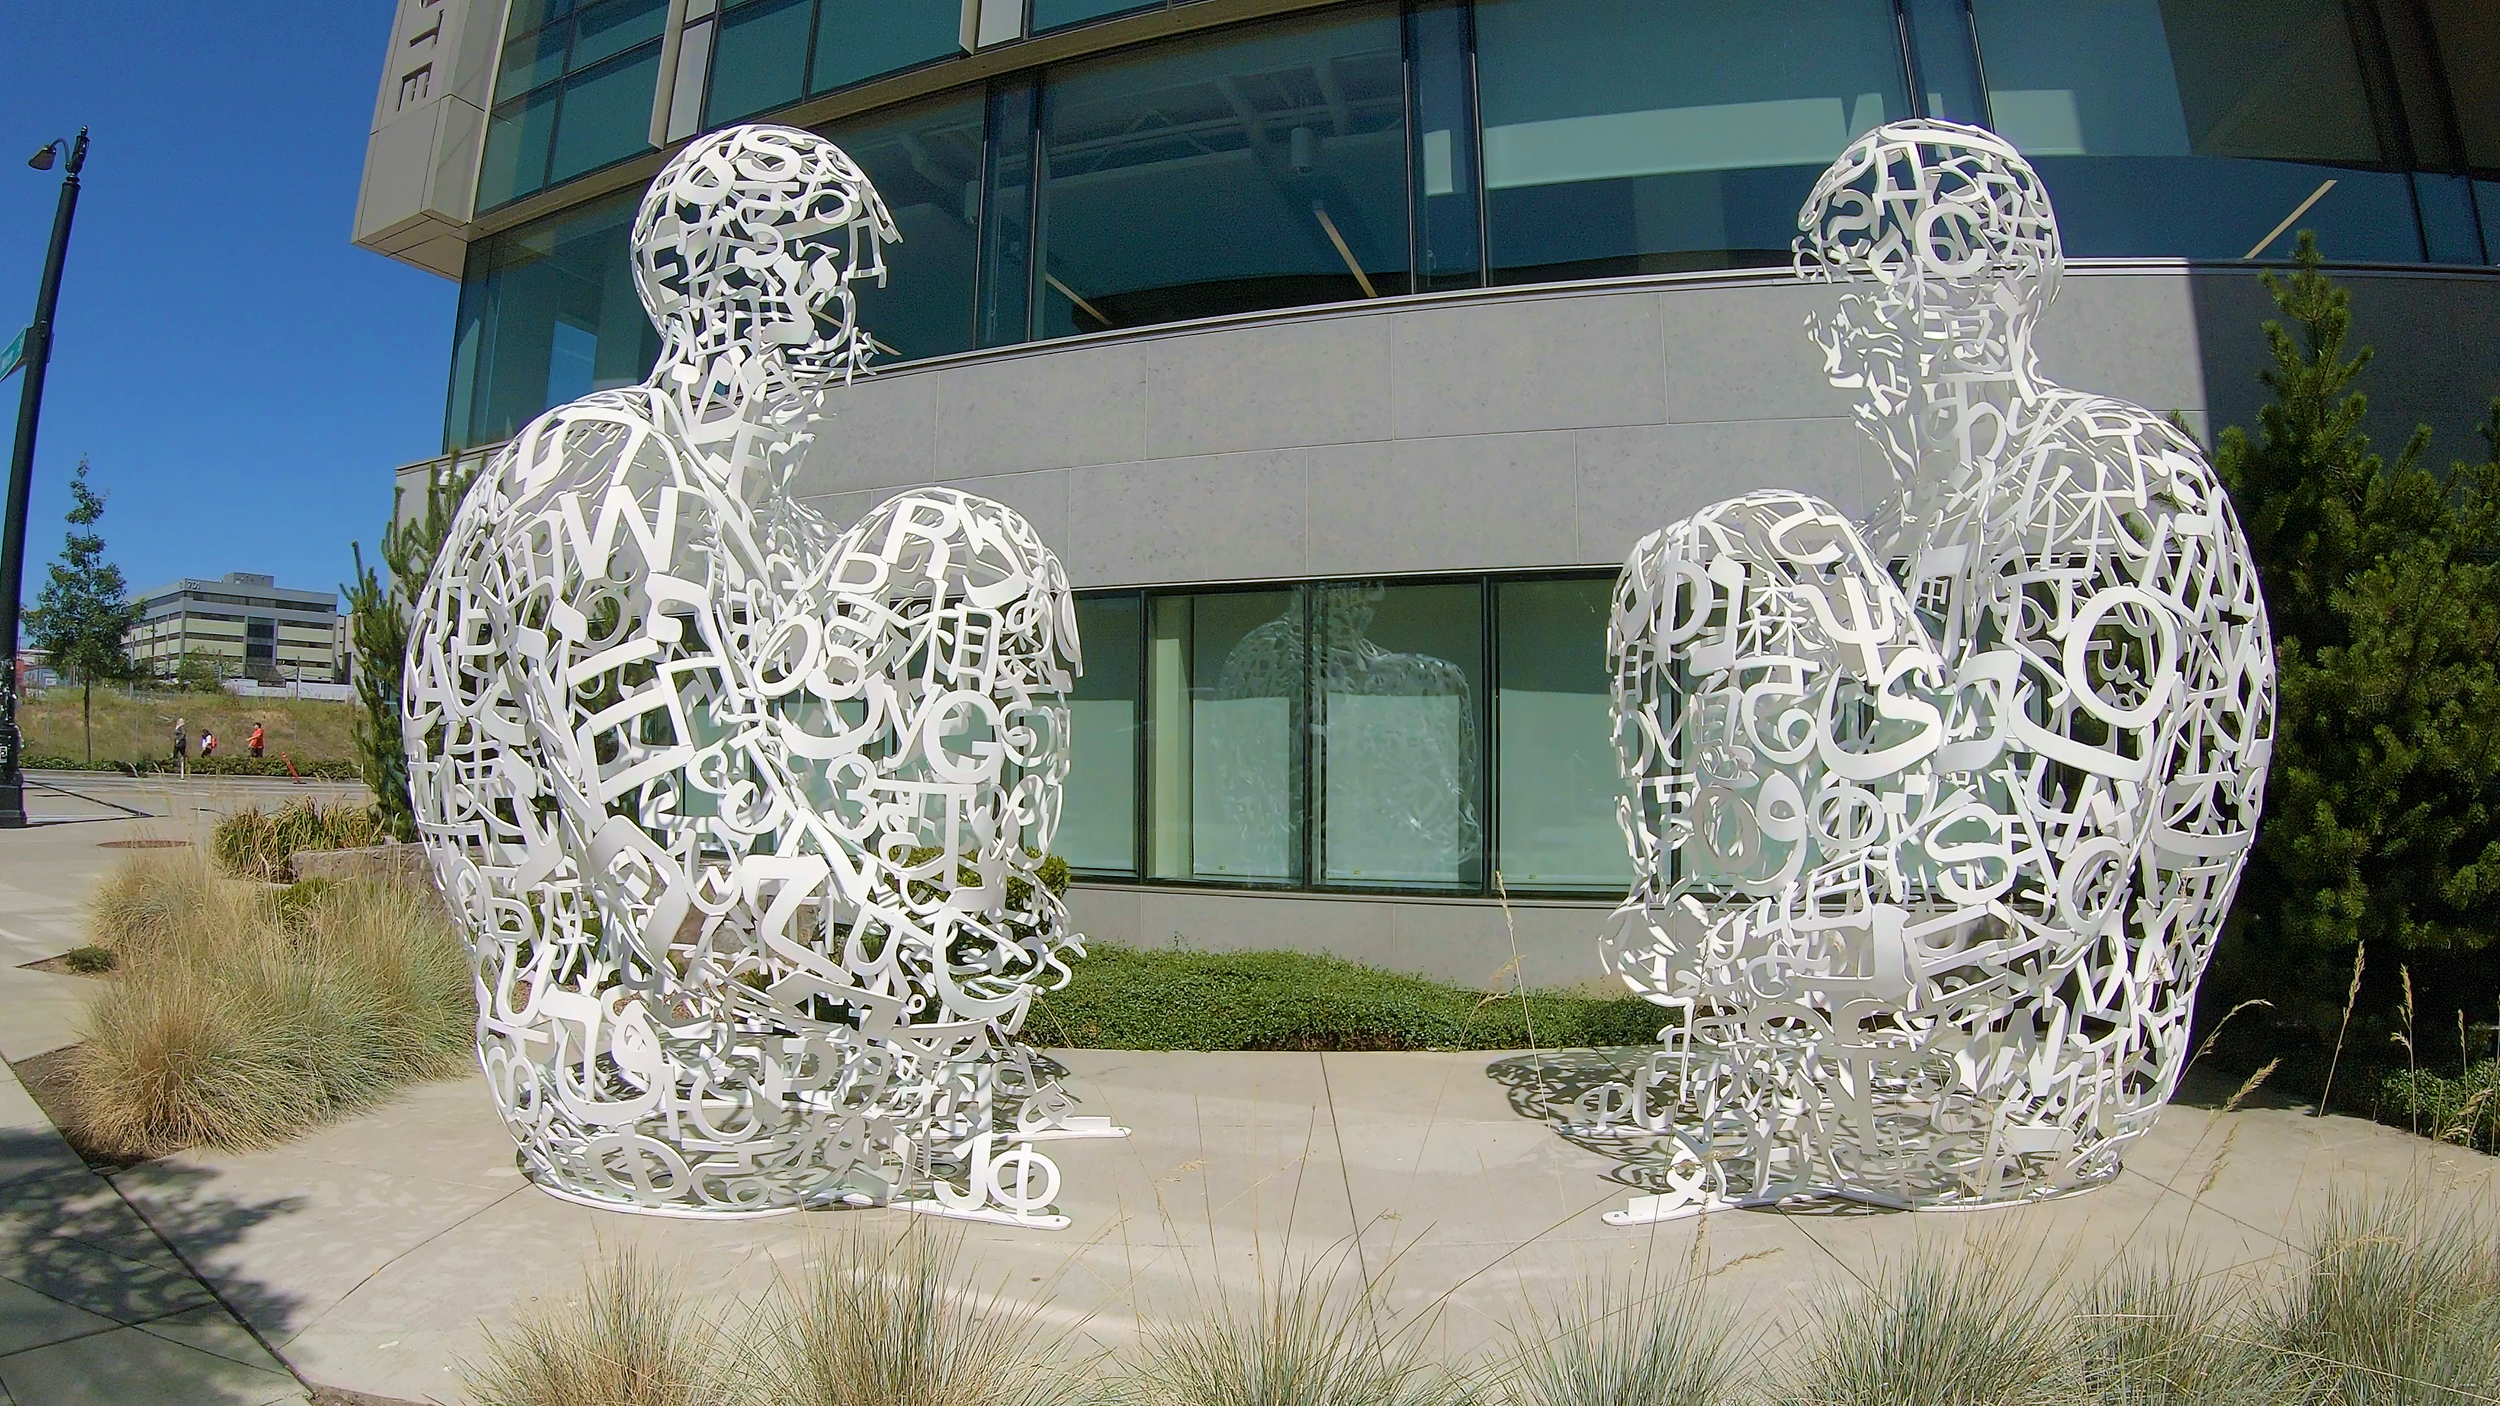 Meetings of Minds by Jaume Plensa